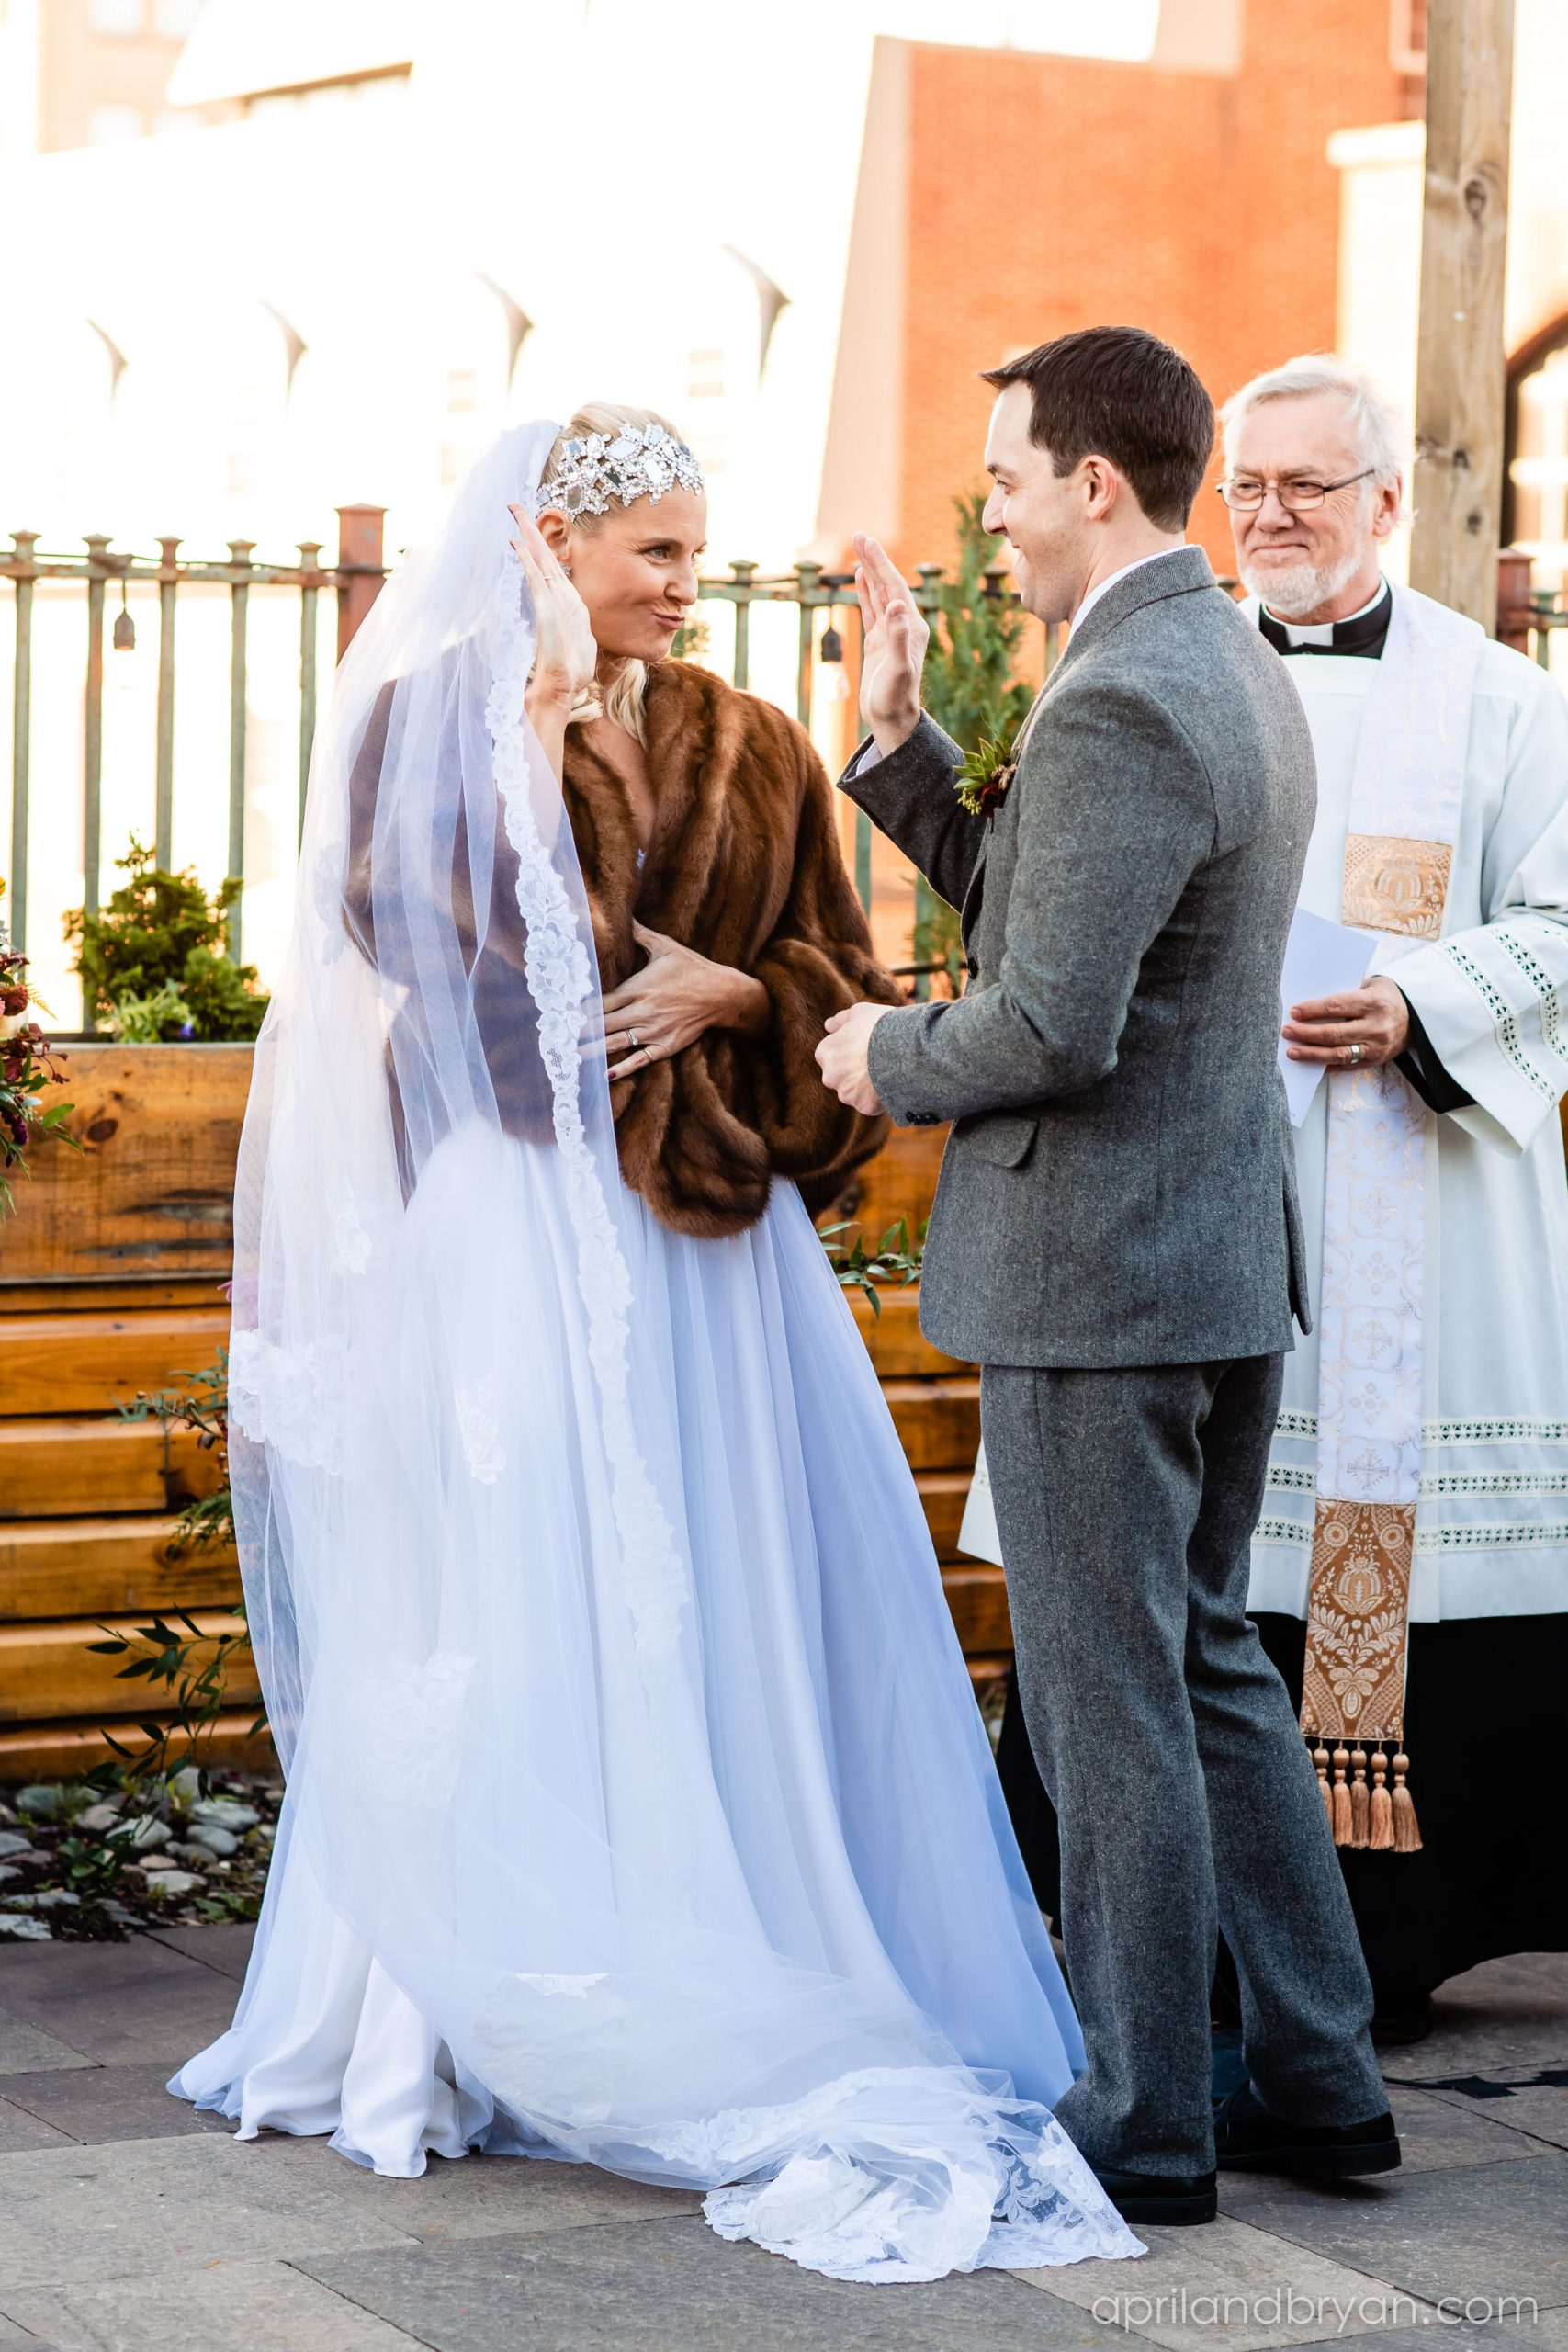 High-fiving each other as they prepare to walk back down the isle as husband and wife. Nicholas and Rebecca Fasnacht tie the not at Tellus360 on November 1, 2019. Captured by April & Bryan Photography and featured on Dream Weddings.